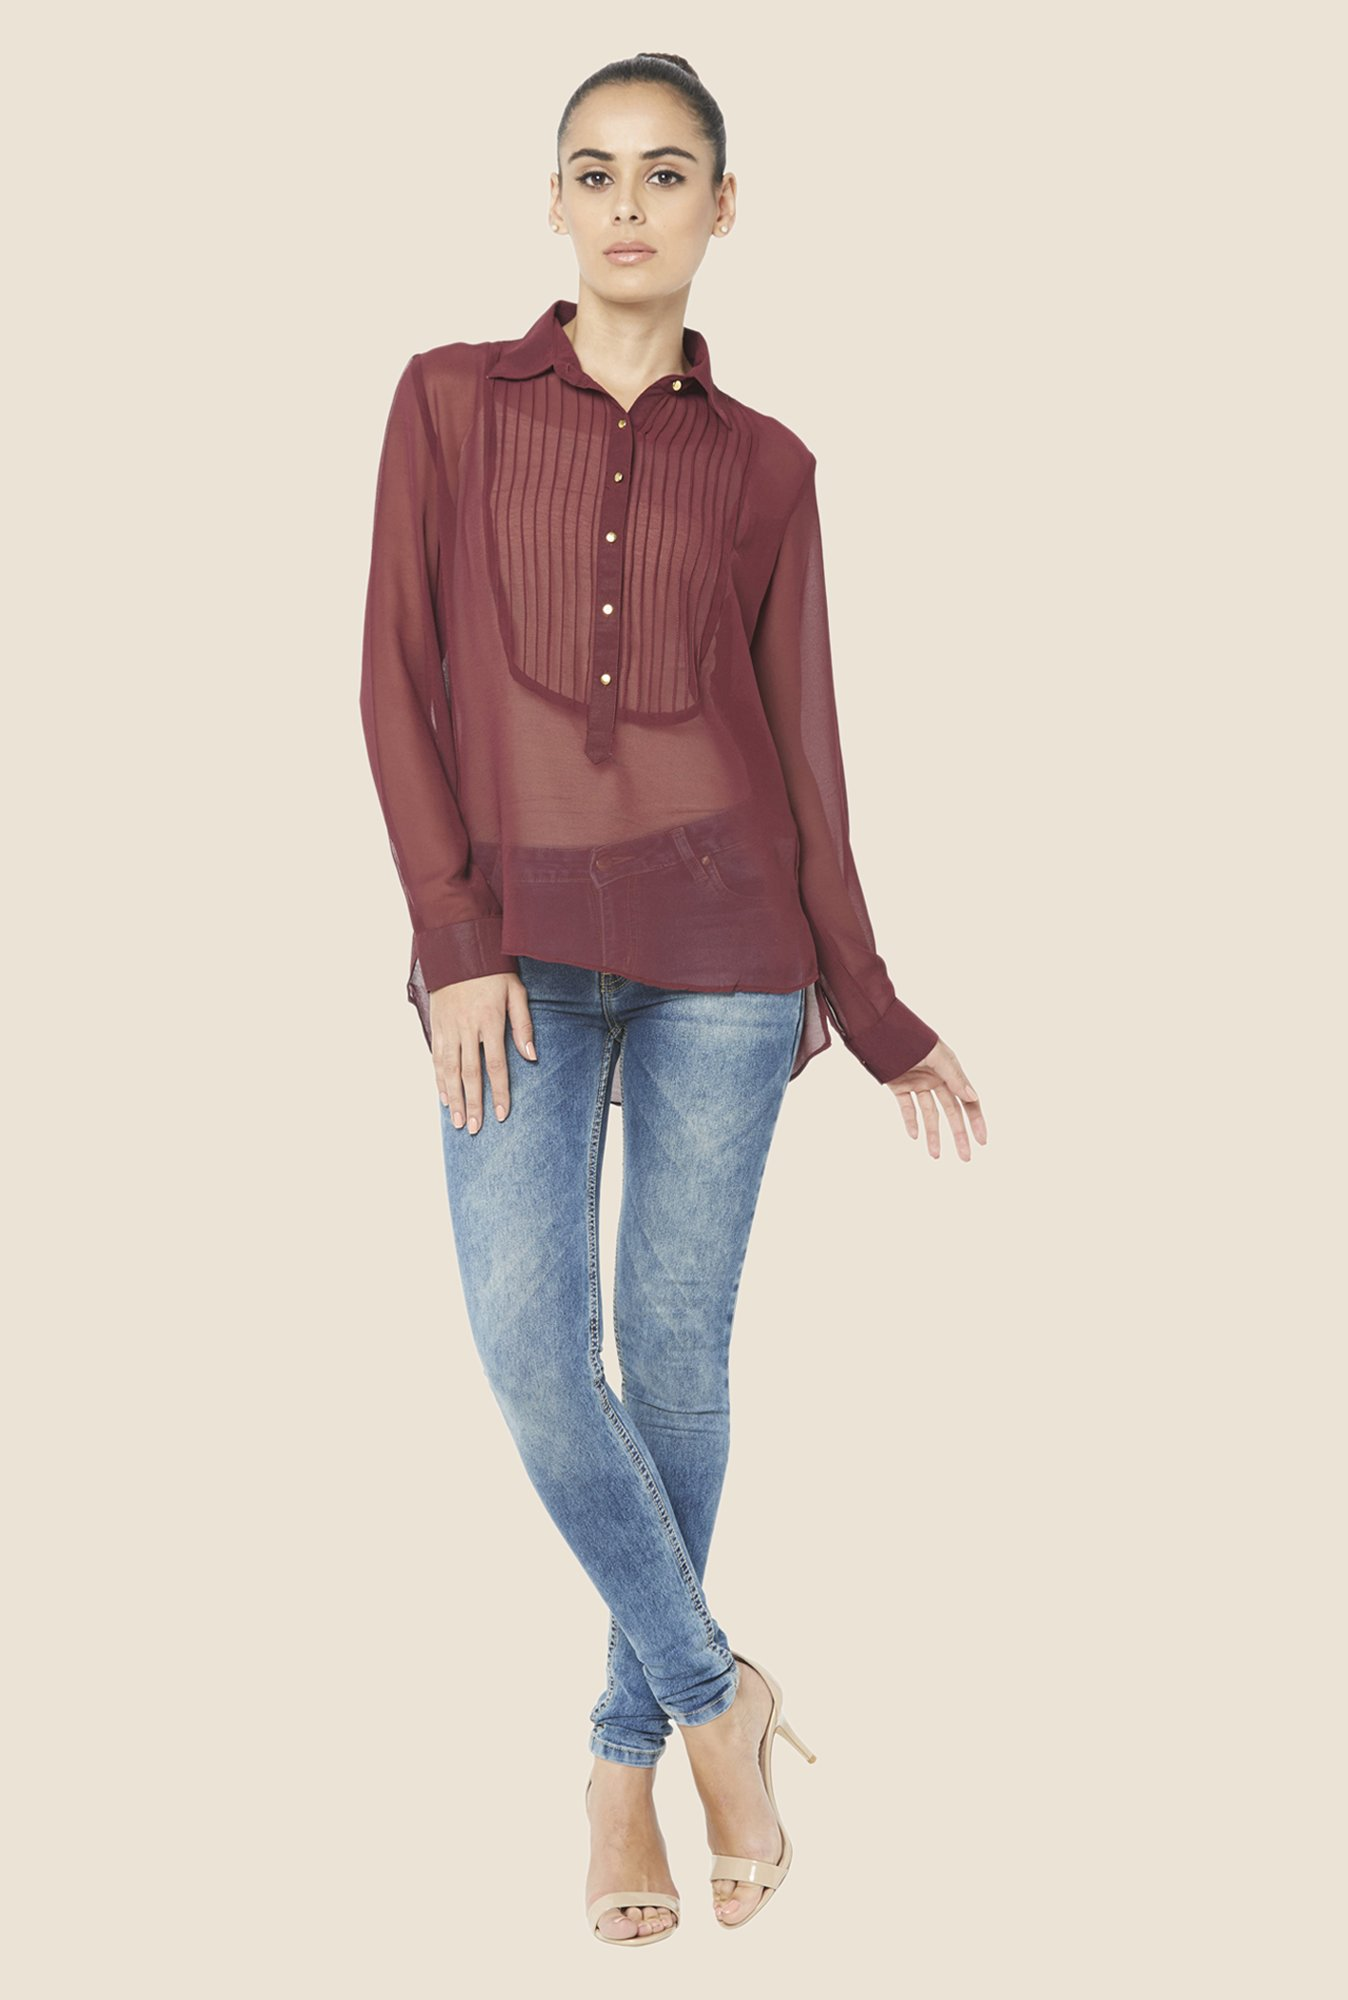 Globus Maroon Solid Sheer Top